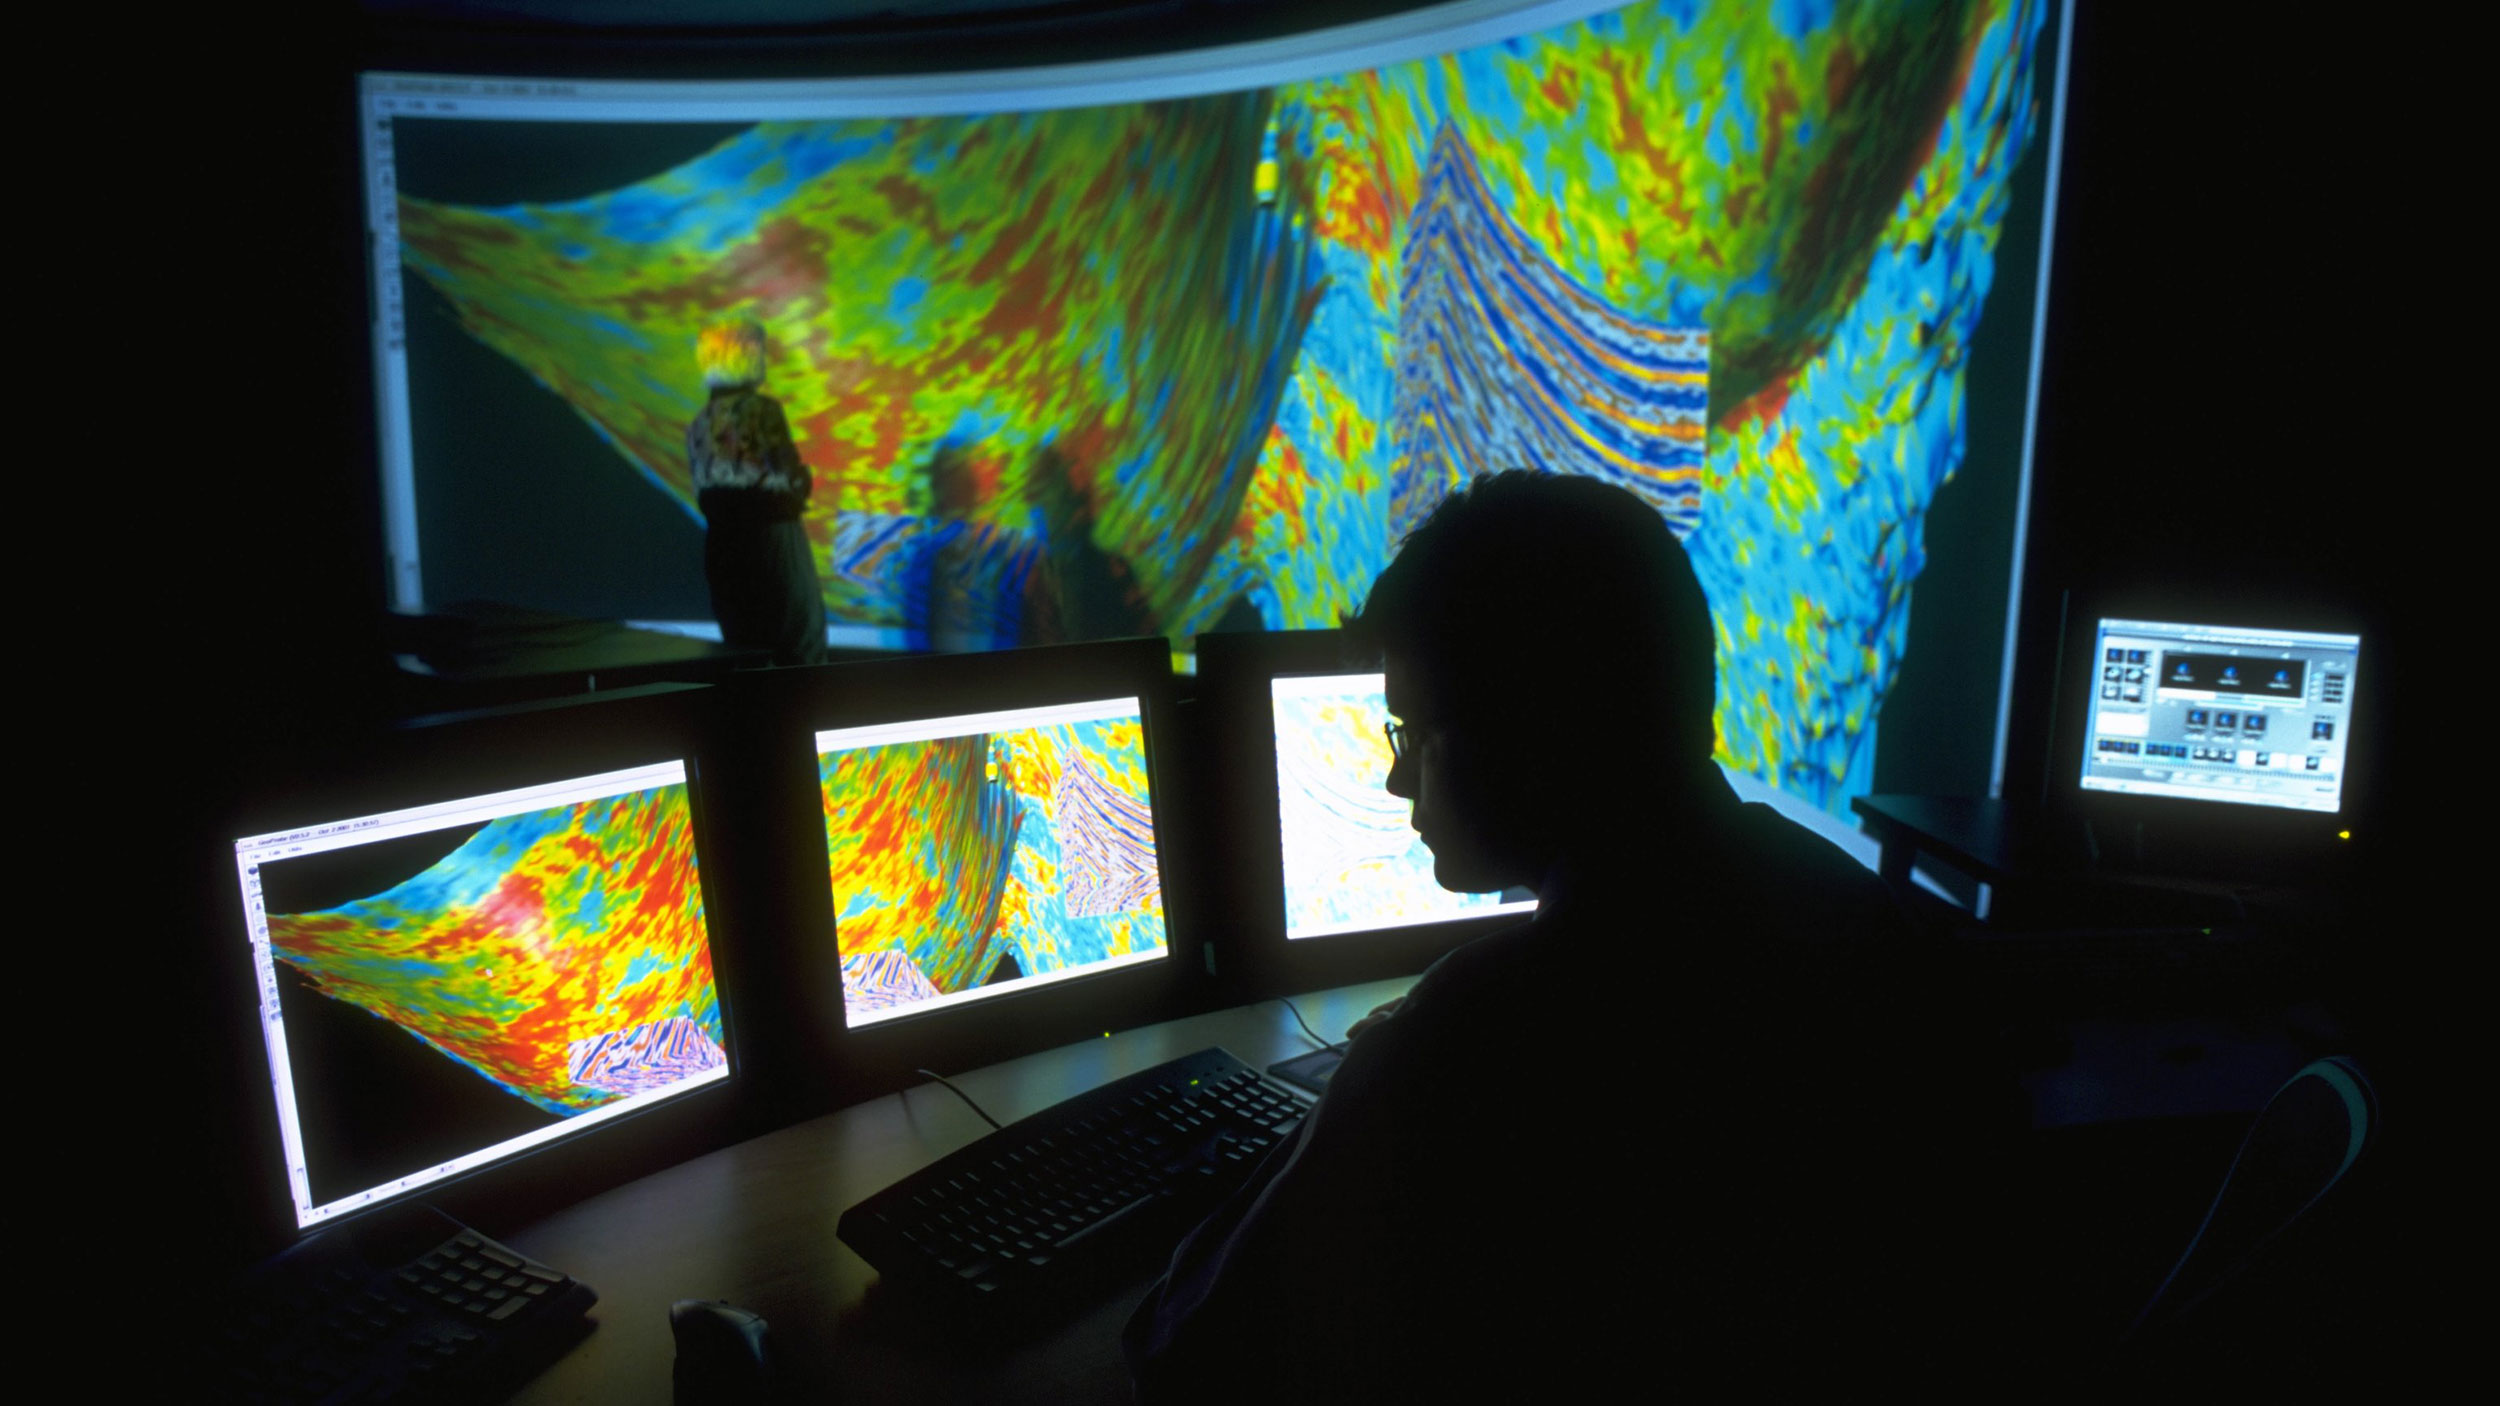 Subsurface operations excellence and data analysis